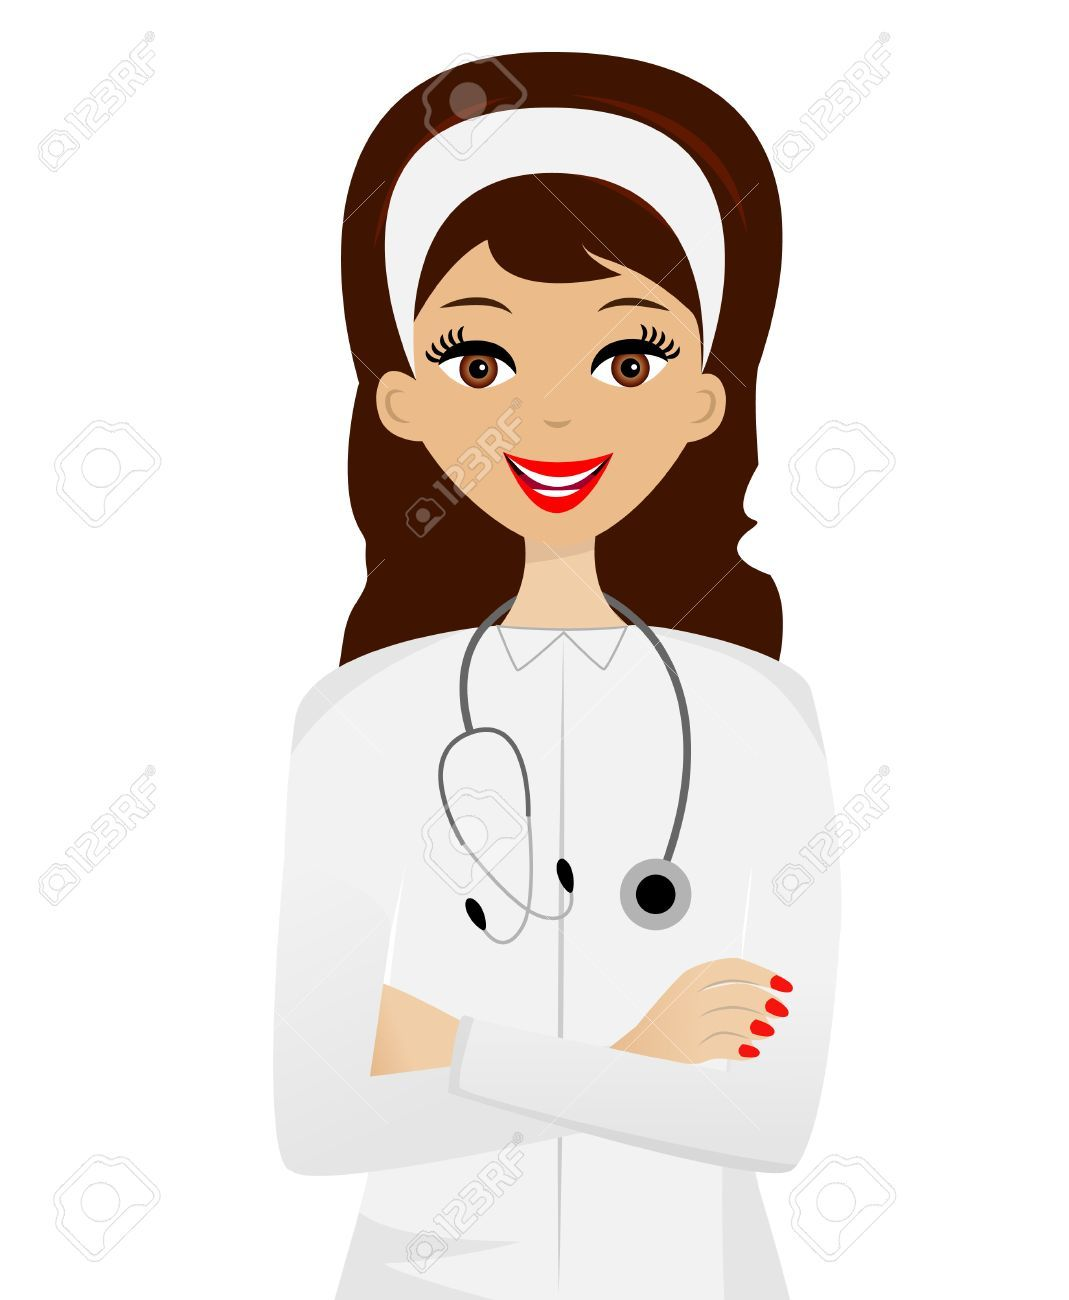 Doctor clipart woman doctor. Google search dream board